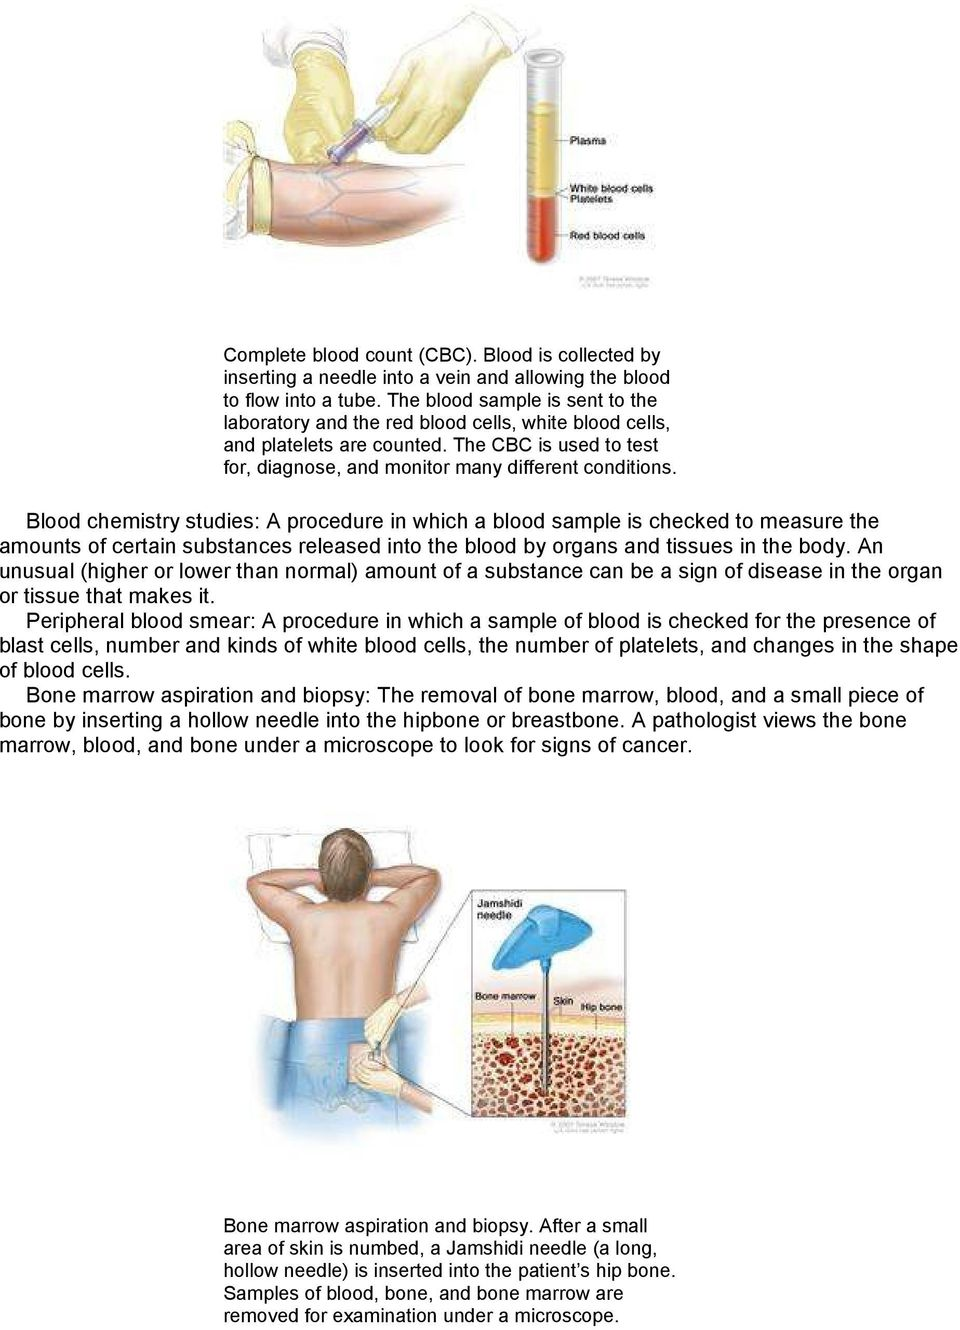 Blood chemistry studies: A procedure in which a blood sample is checked to measure the amounts of certain substances released into the blood by organs and tissues in the body.